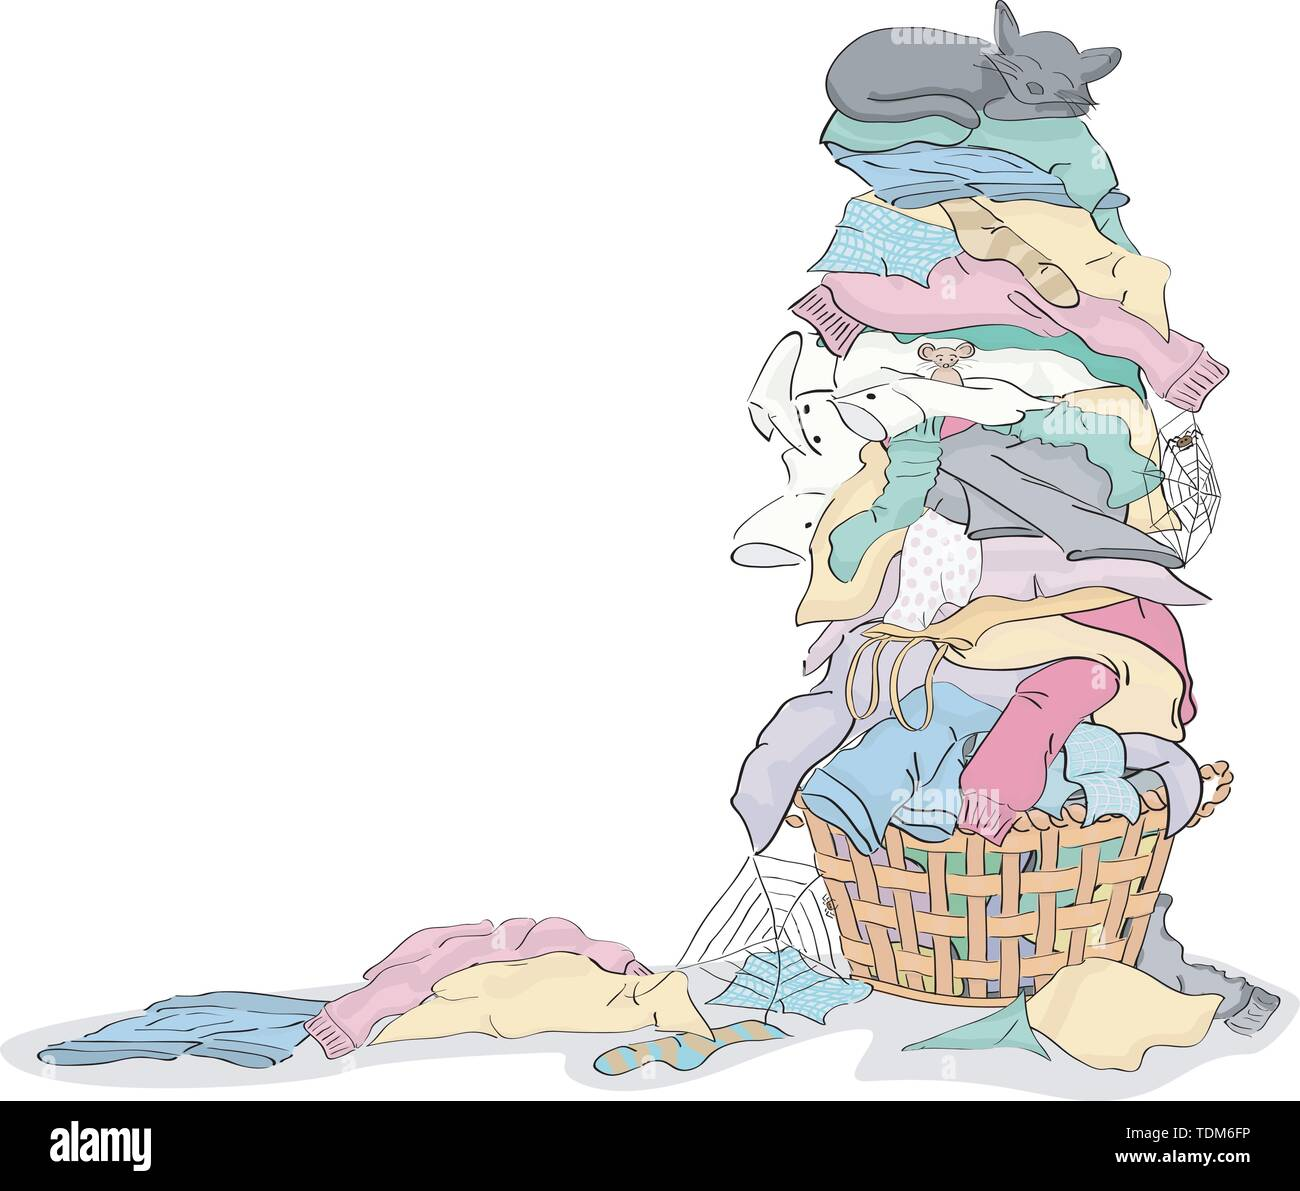 Tall Pile of Dirty Laundry in Basket with Cat and Critters grouped and layered easy to edit - Stock Image